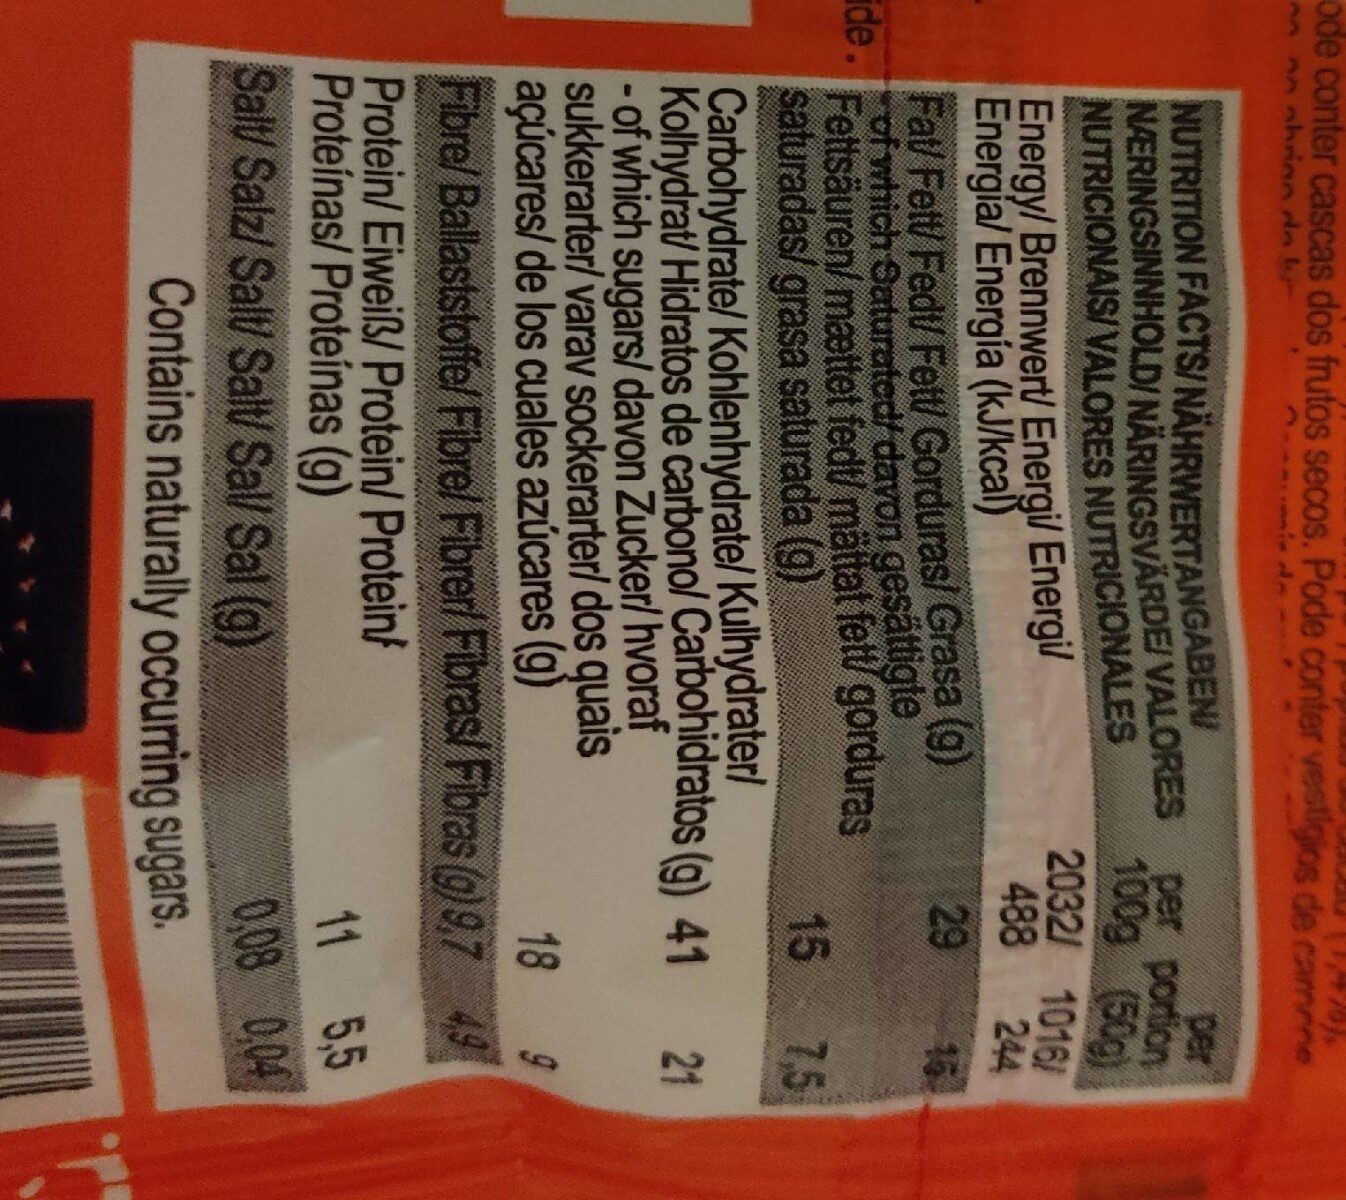 Cacao nibs walnut - Nutrition facts - fr